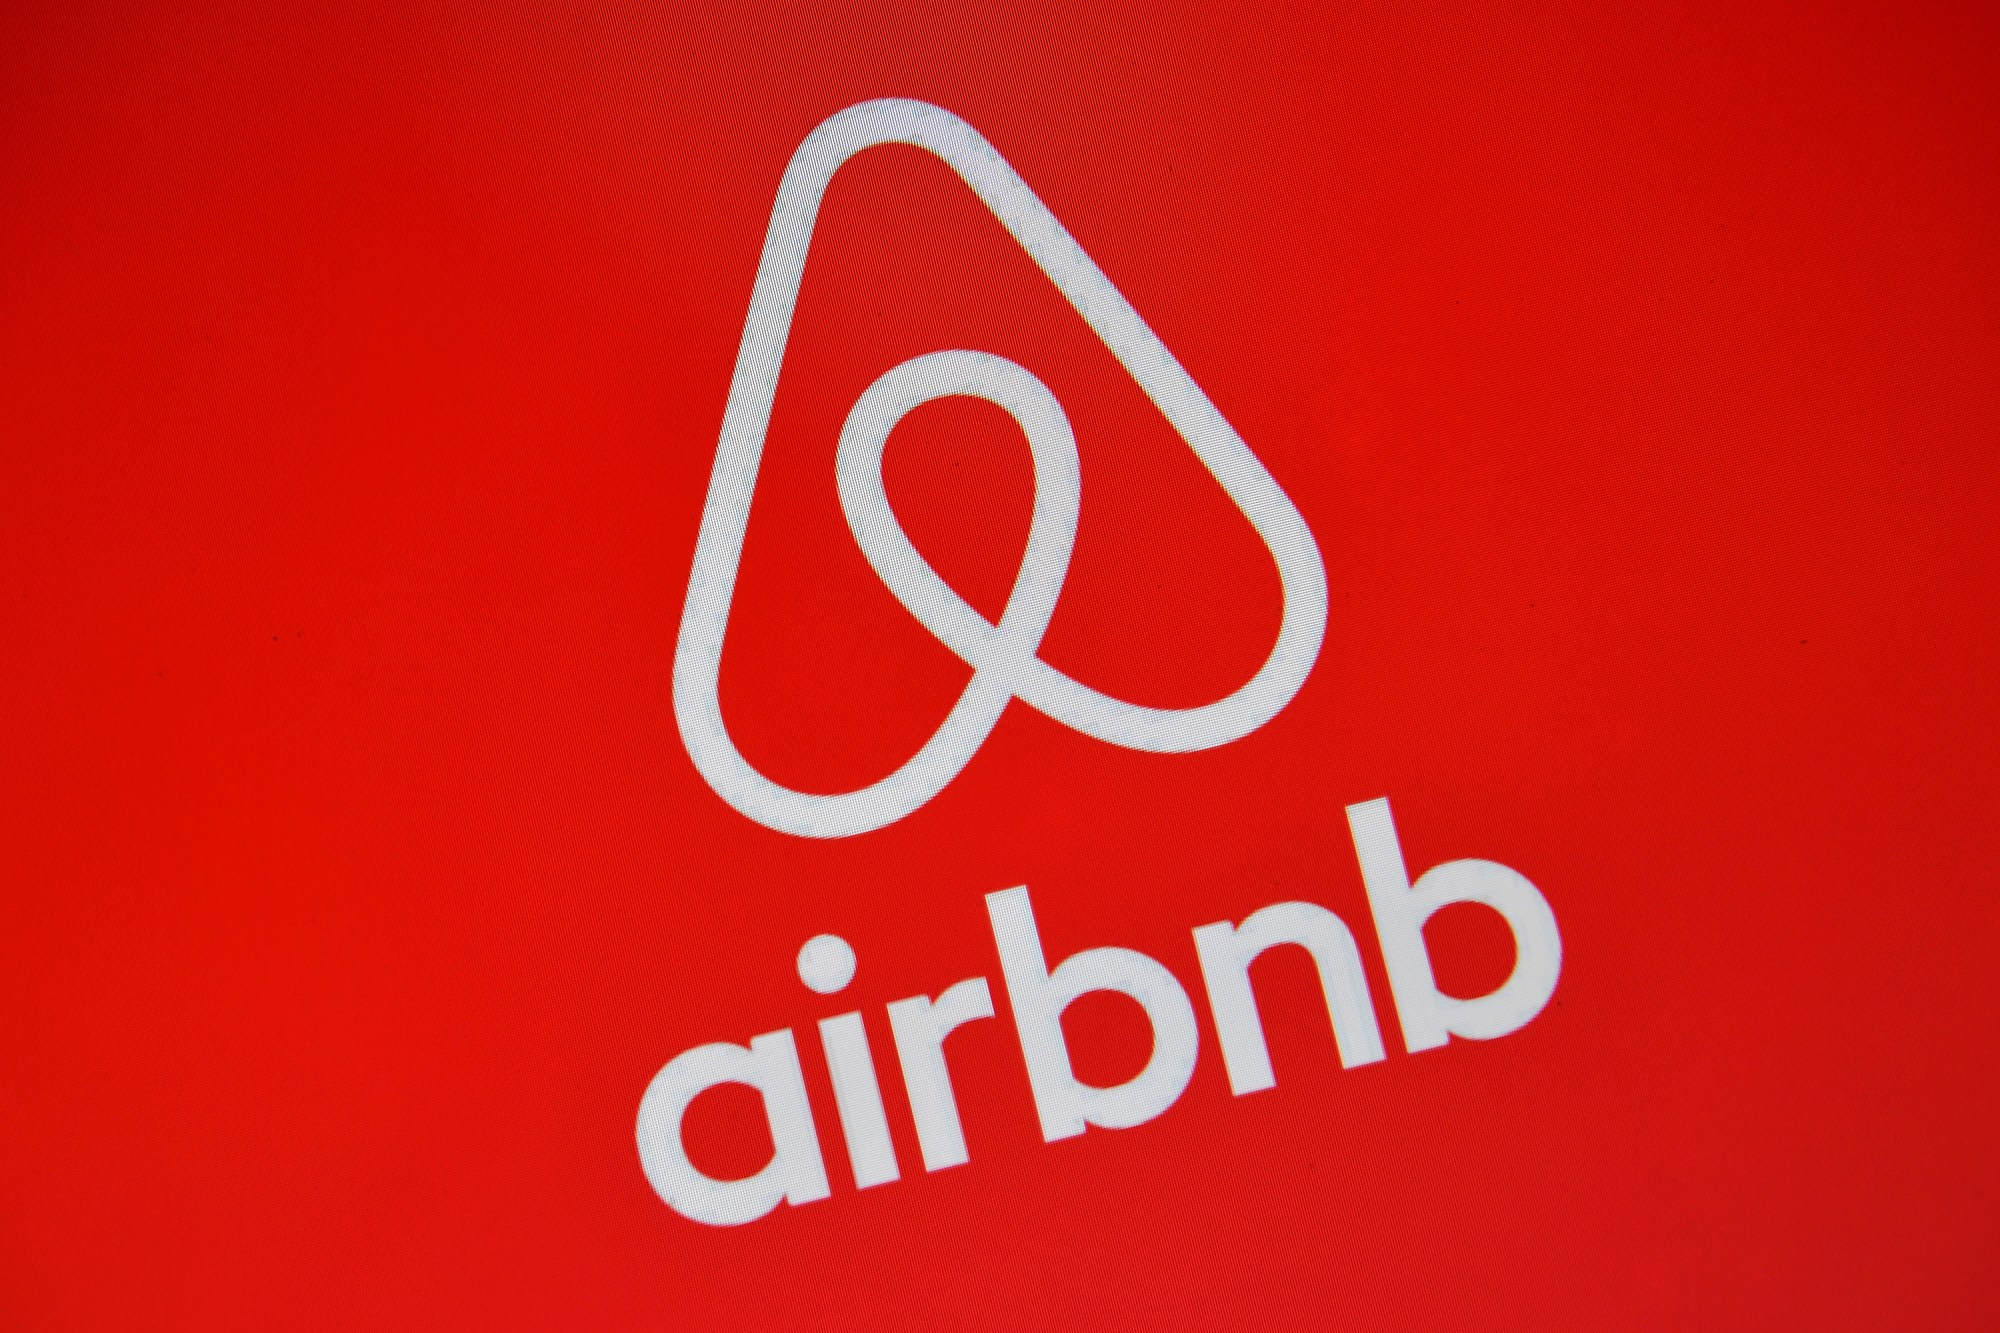 The Airbnb logo is displayed on a computer screen in London on Aug. 3, 2016. (Carl Court / Getty Images)